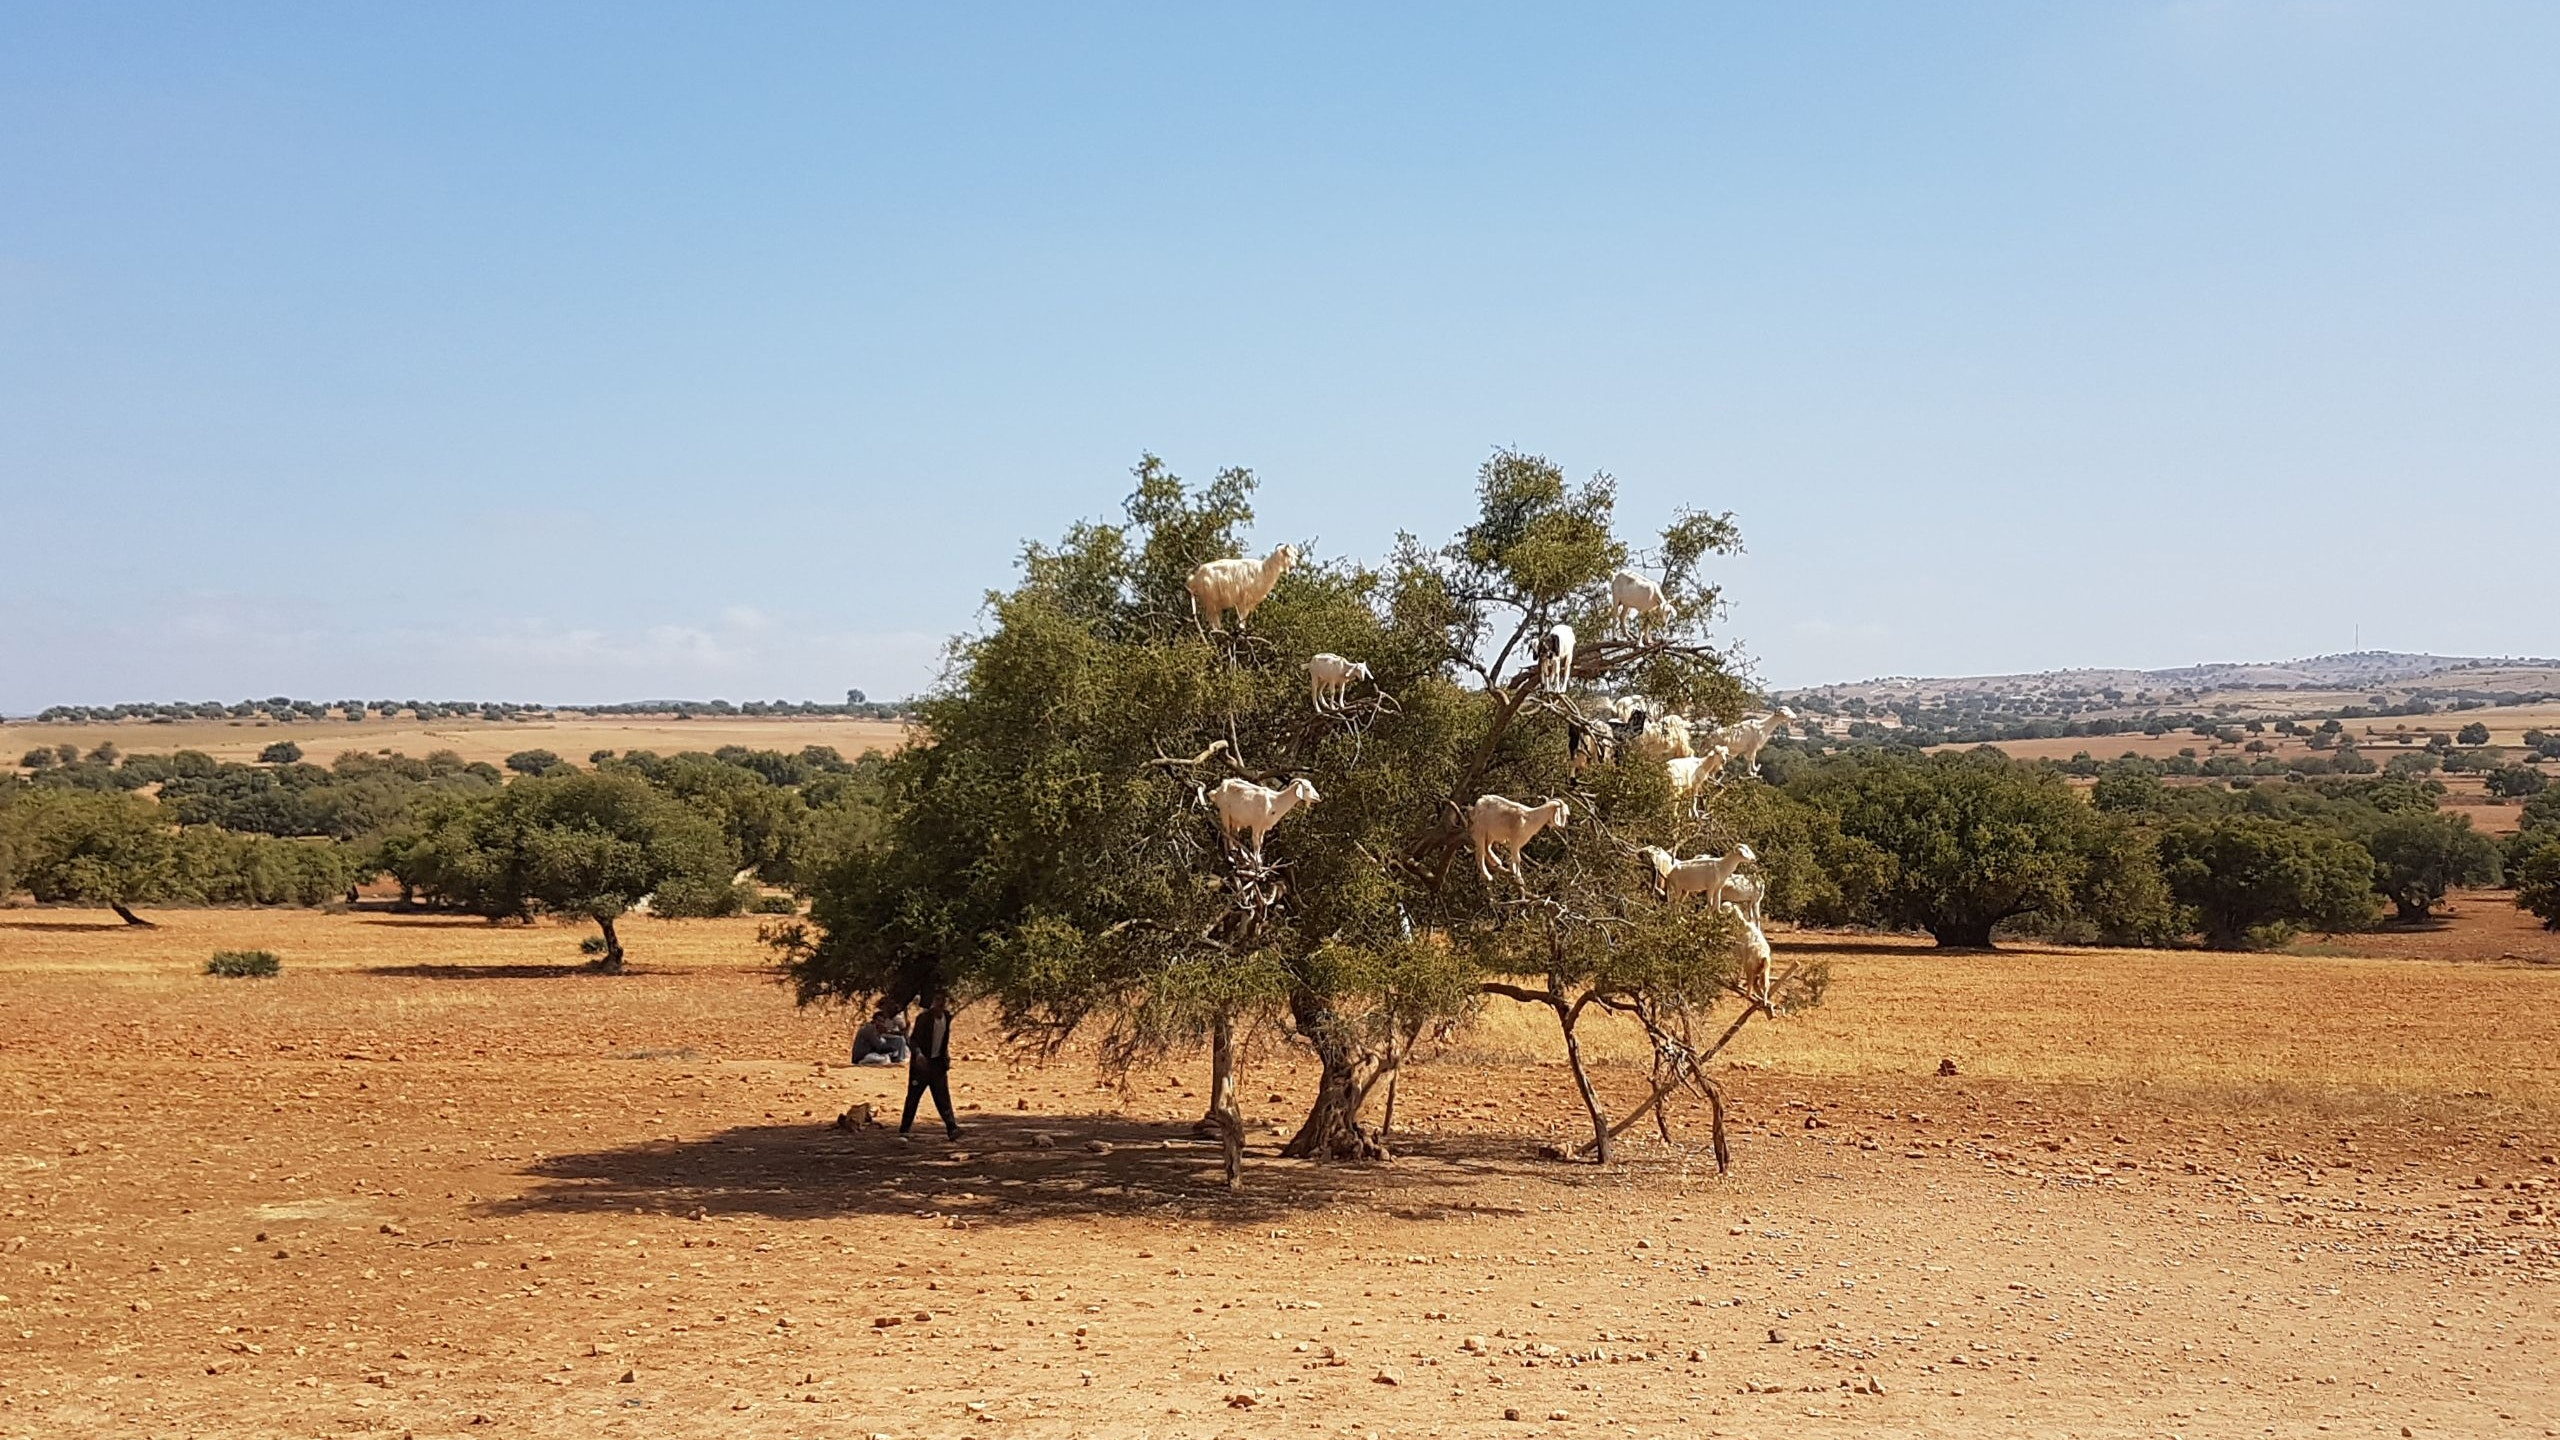 What appear to be odd-shaped fruits in an argan tree are actually goats.